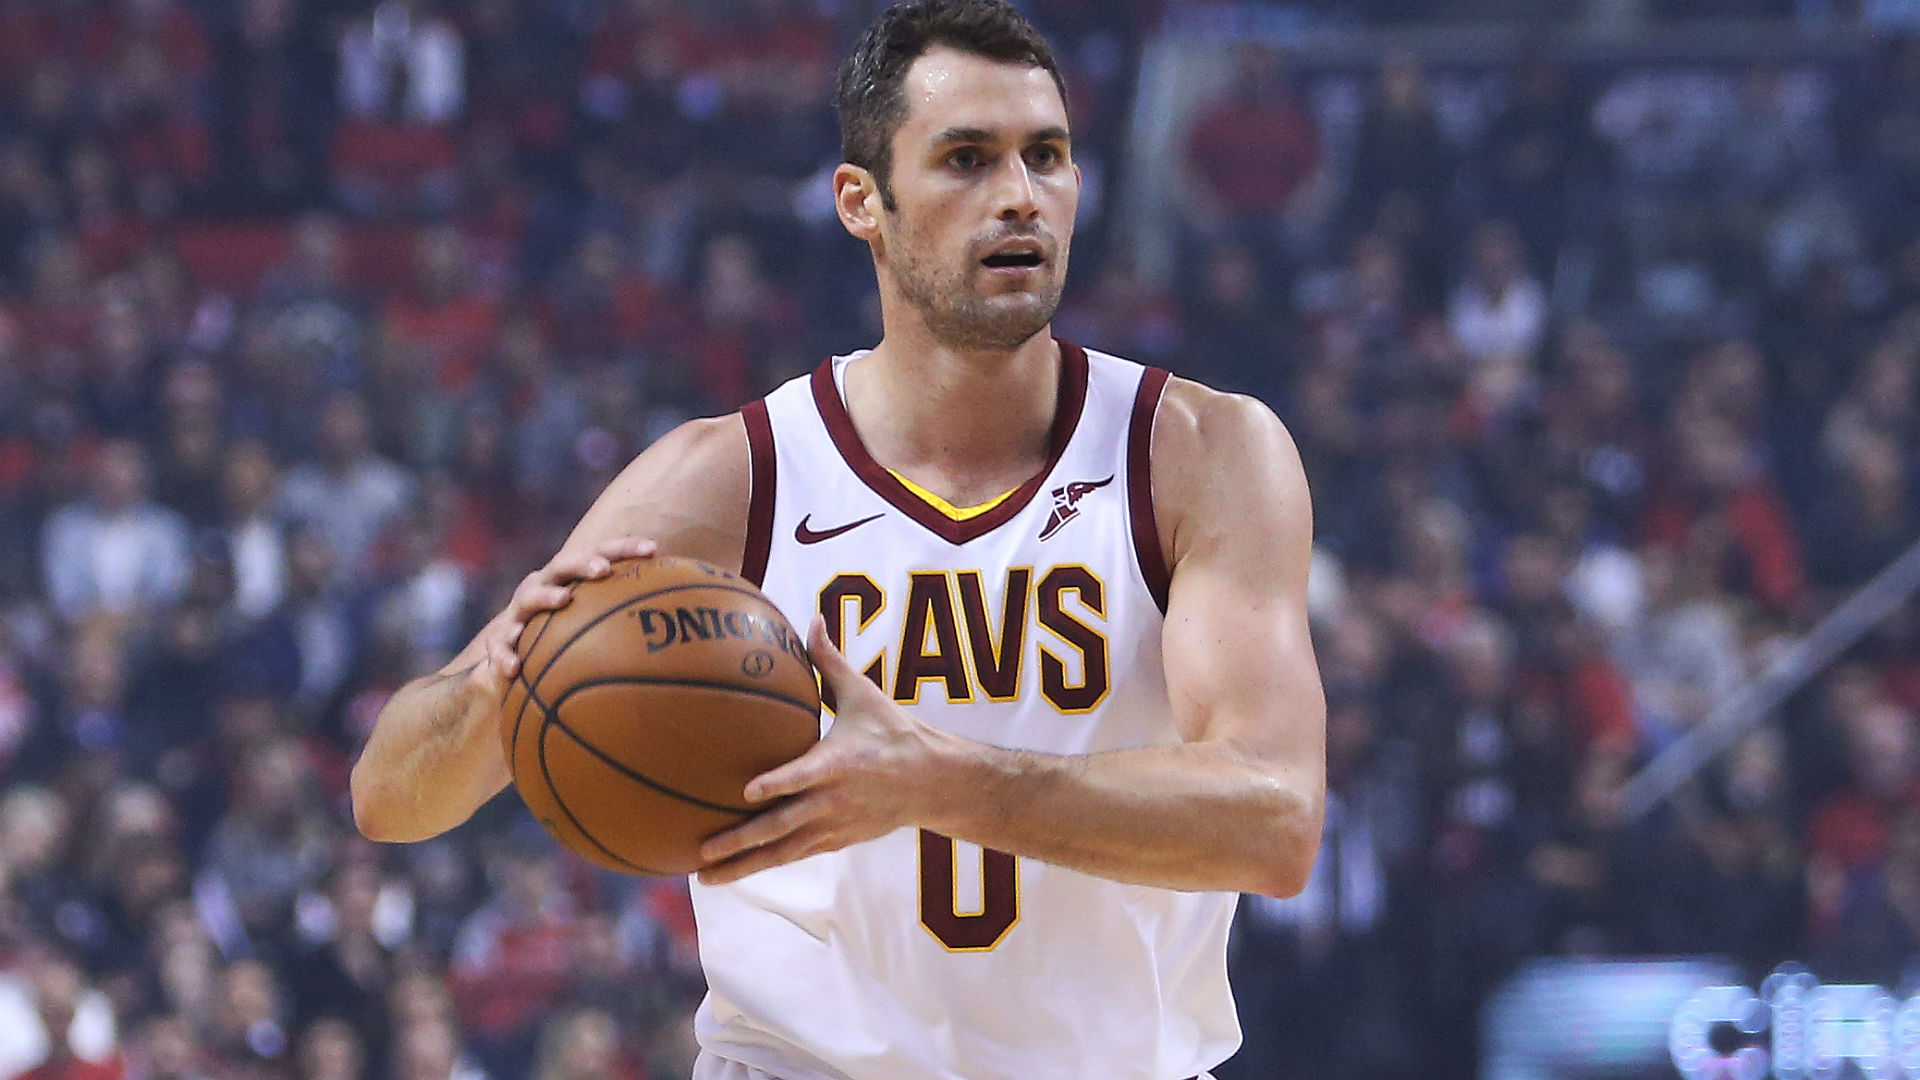 Cavaliers expected to receive offers for Love